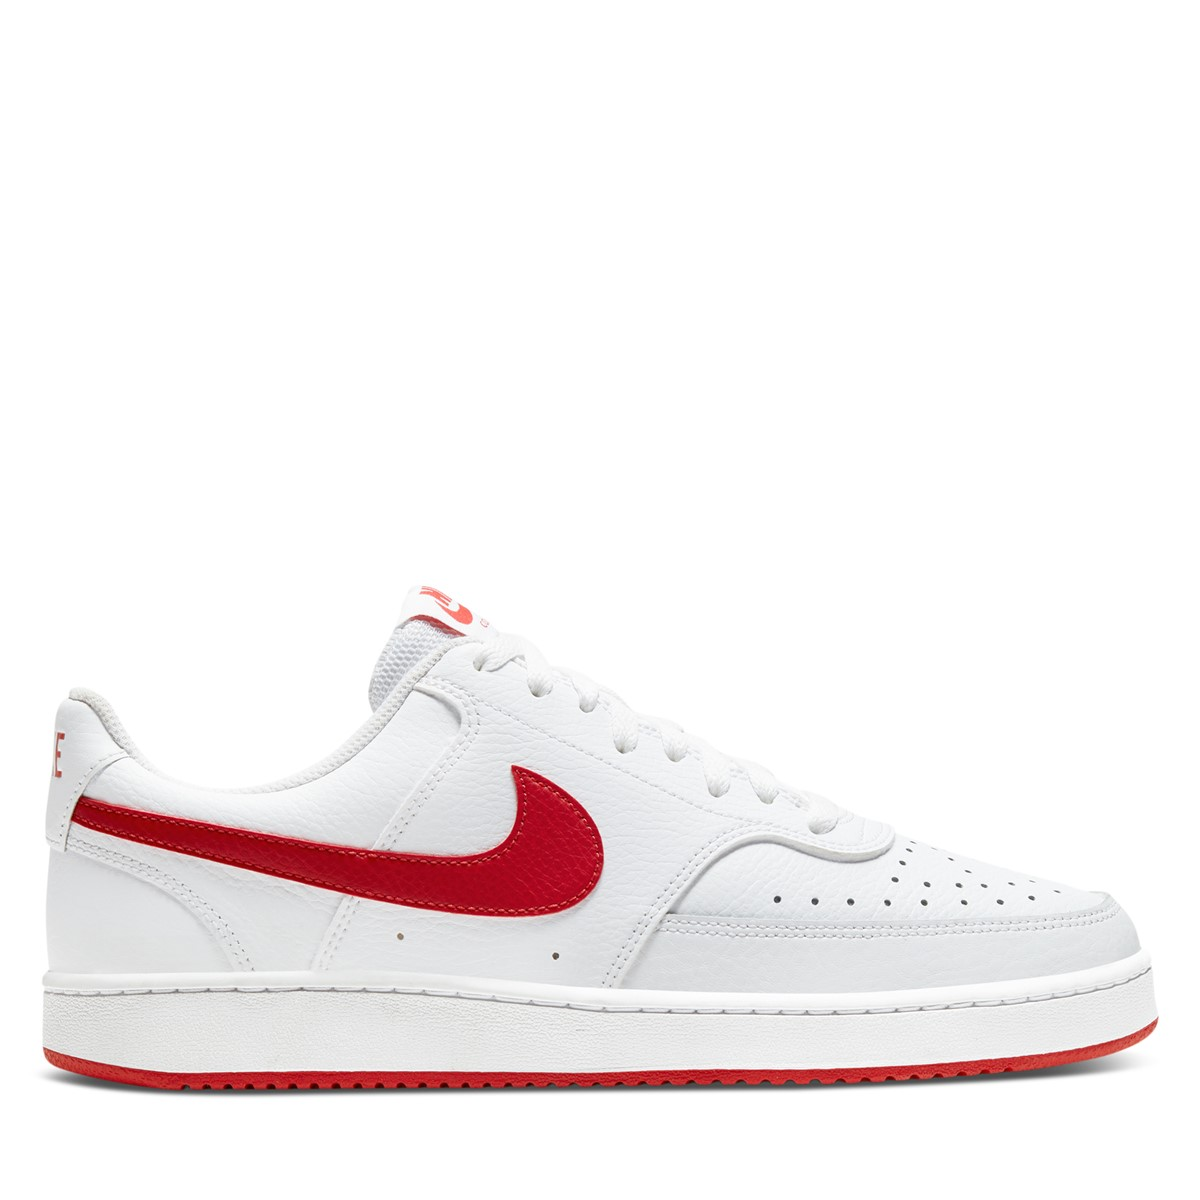 Men's Court Vision Low Sneakers in White/Red